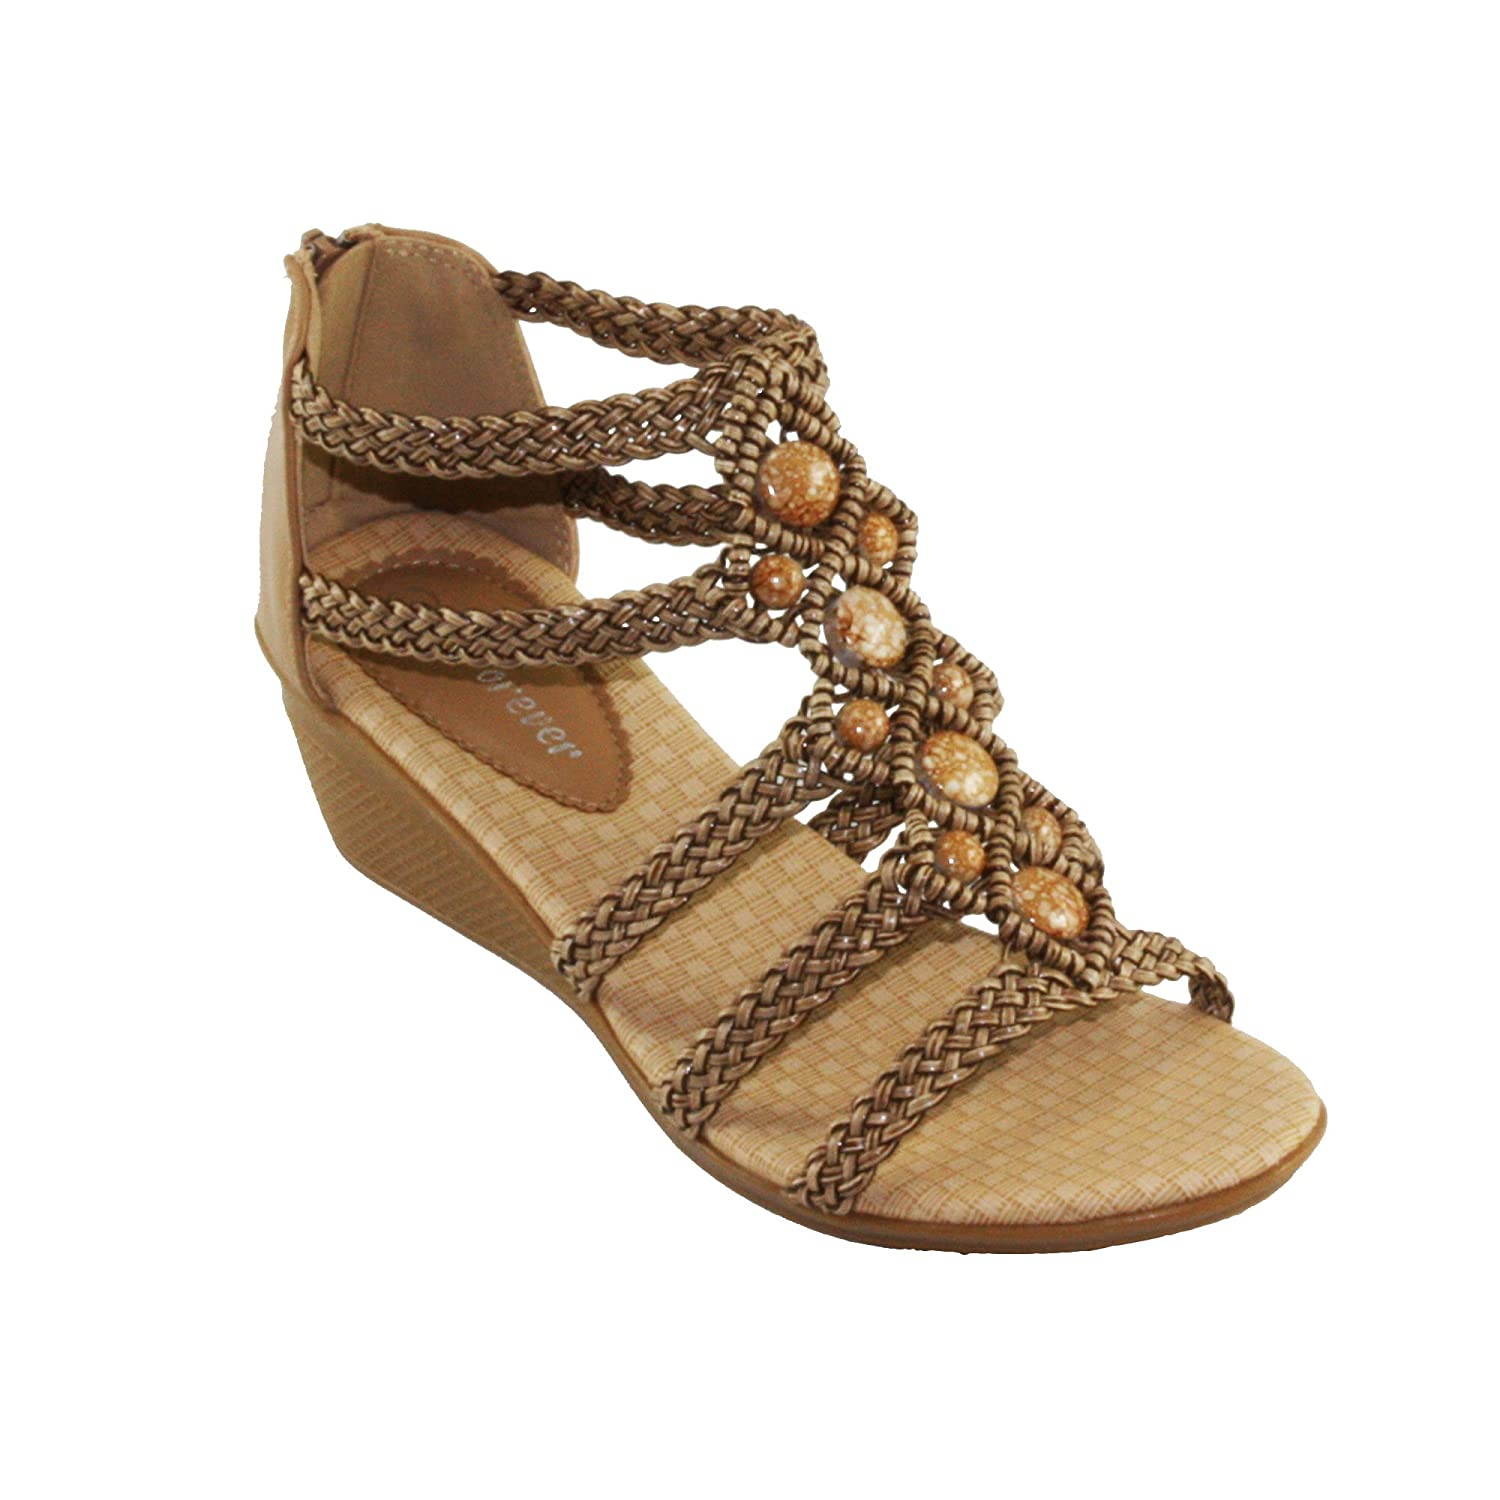 Forever Women's Paramount-11 Woven Strappy Low Wedge Heel Sandals B06XB8H81L 7.5 B(M) US|Taupe